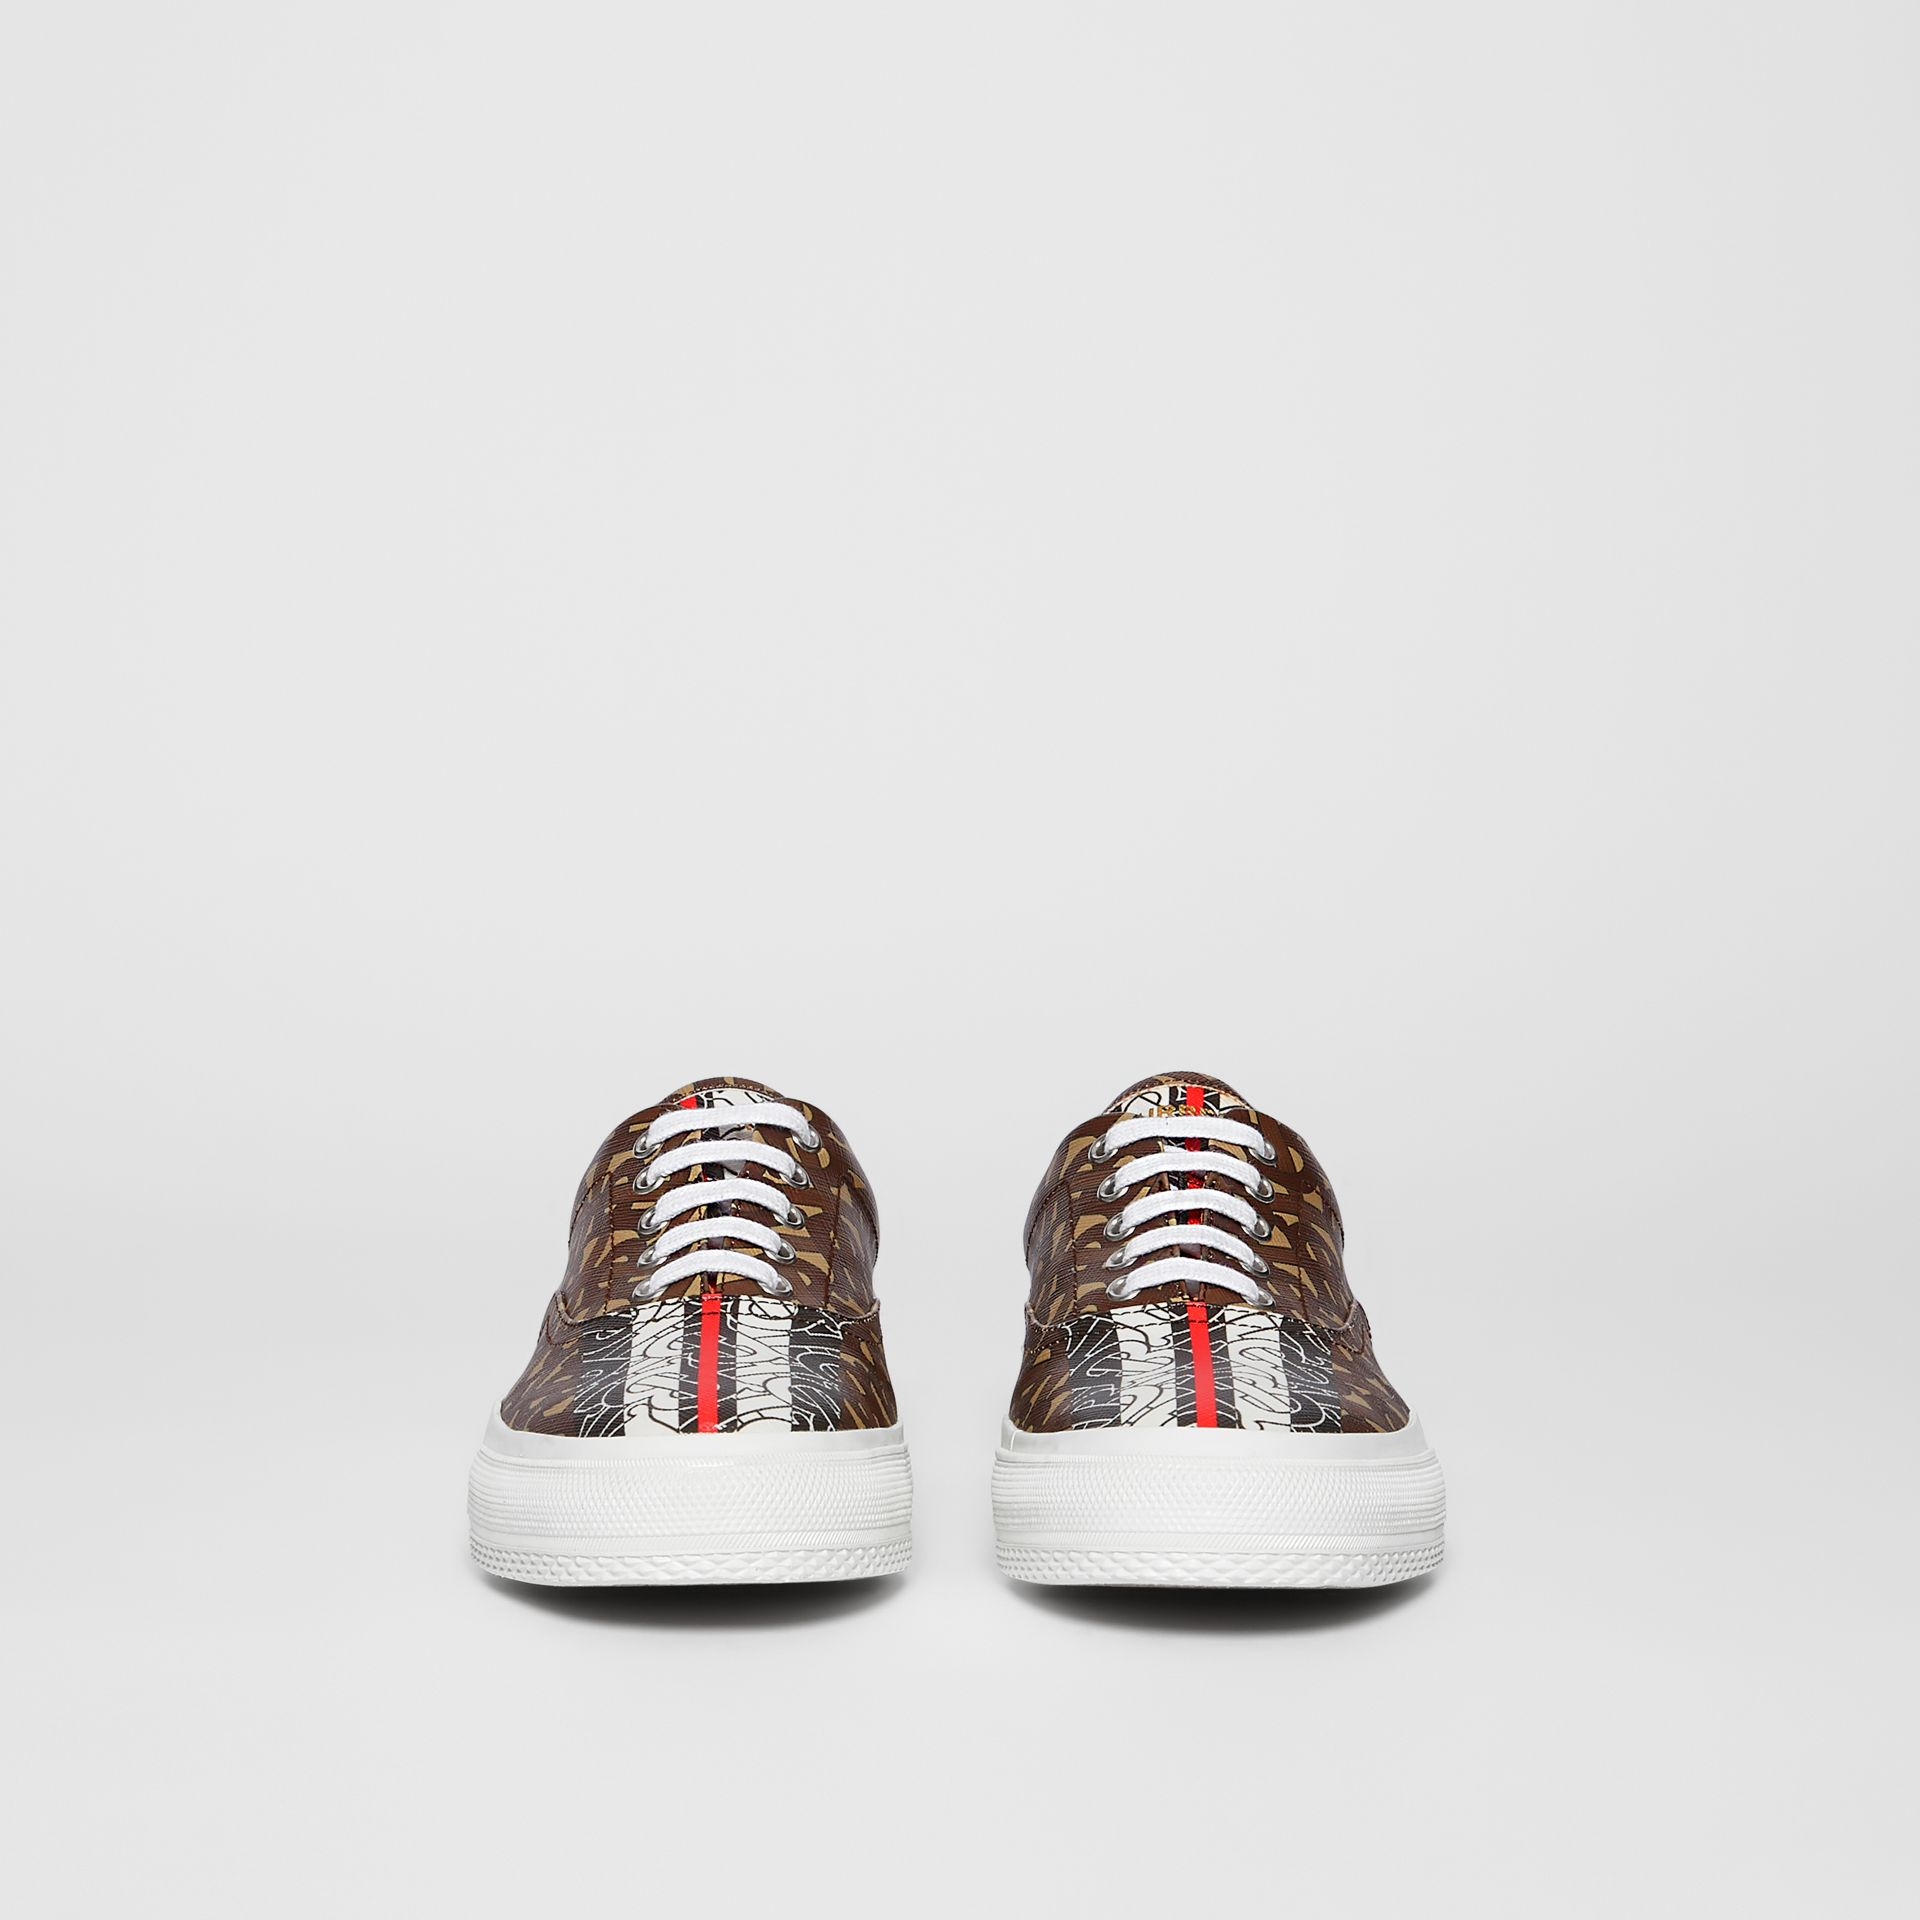 Monogram Stripe E-canvas Sneakers in Bridle Brown - Women | Burberry Hong Kong S.A.R - gallery image 3